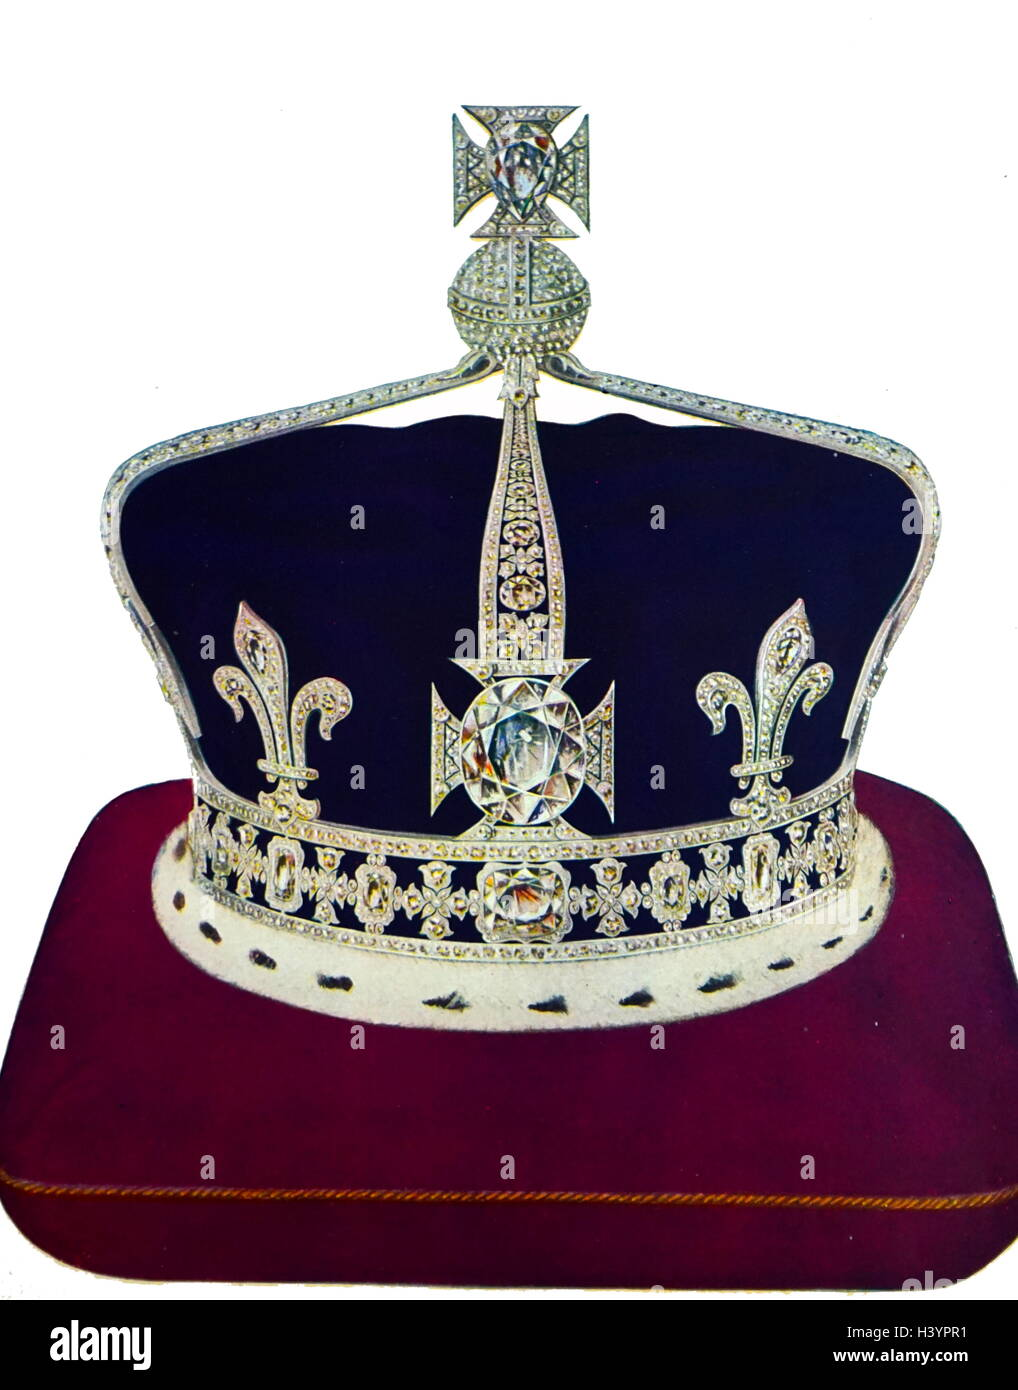 Queen Elizabeth's crown, made by Garrard Stock Photo ...